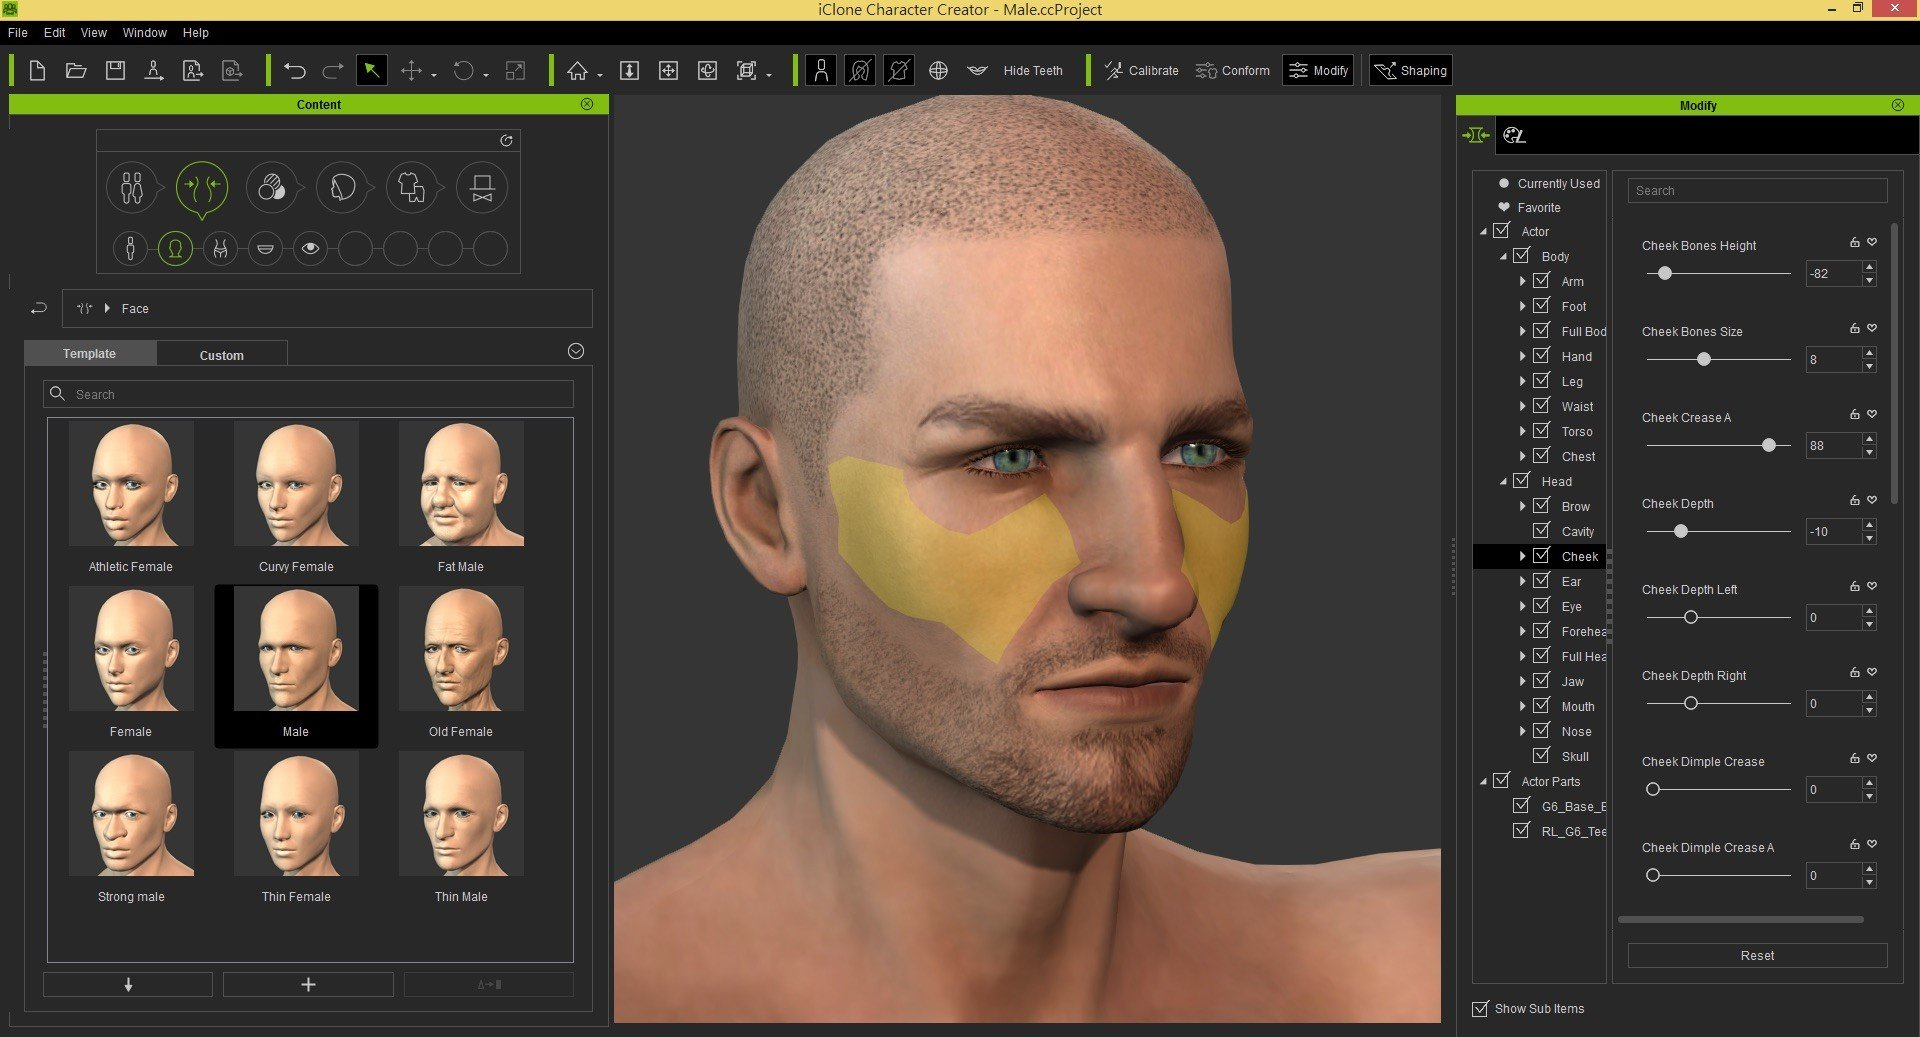 iClone Character Creator Alternatives and Similar Software